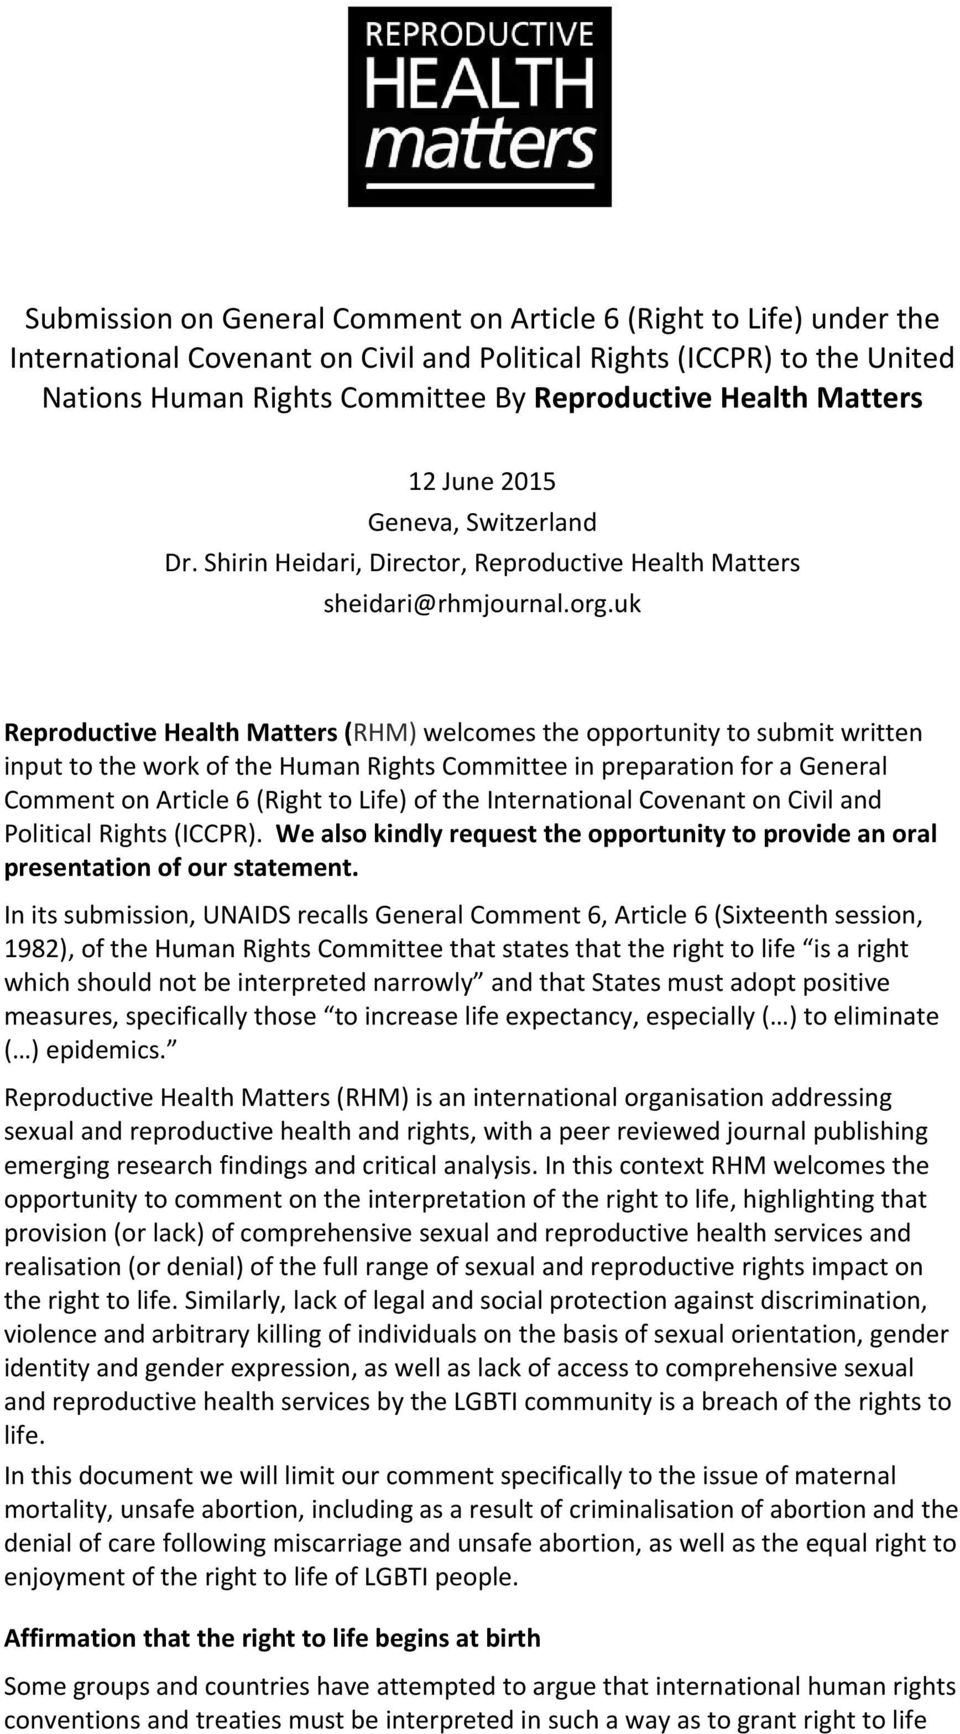 uk Reproductive Health Matters (RHM) welcomes the opportunity to submit written input to the work of the Human Rights Committee in preparation for a General Comment on Article 6 (Right to Life) of